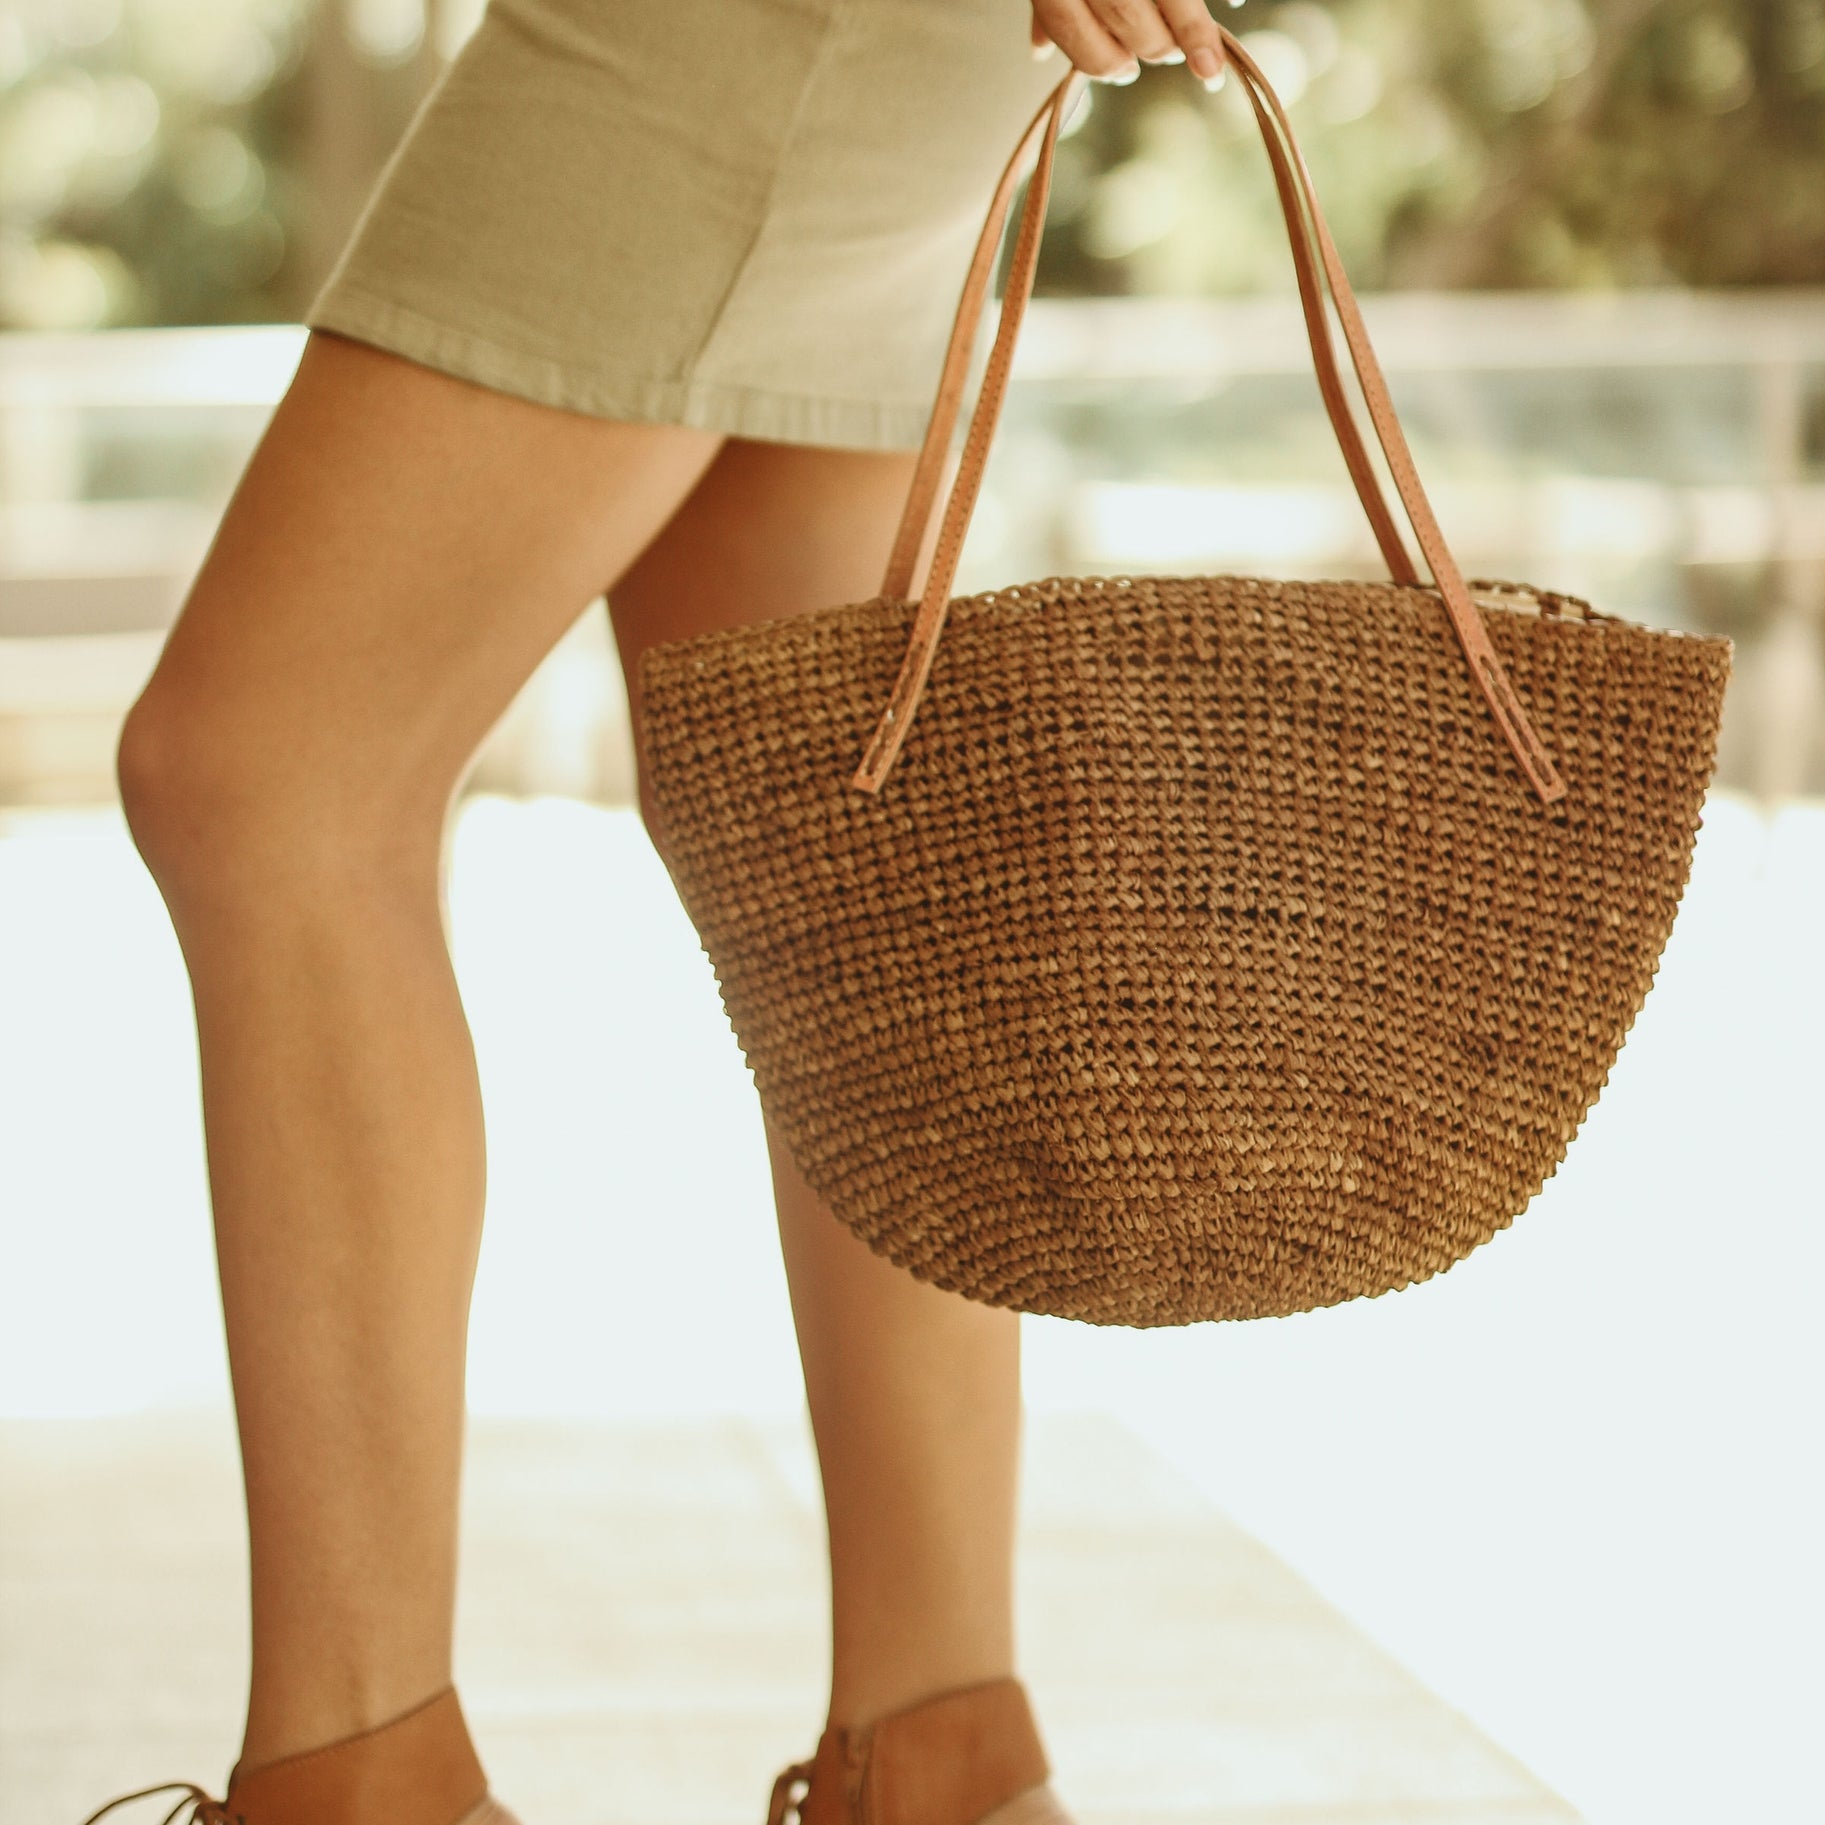 Tika Bucket Crochet Handbag - Tobacco